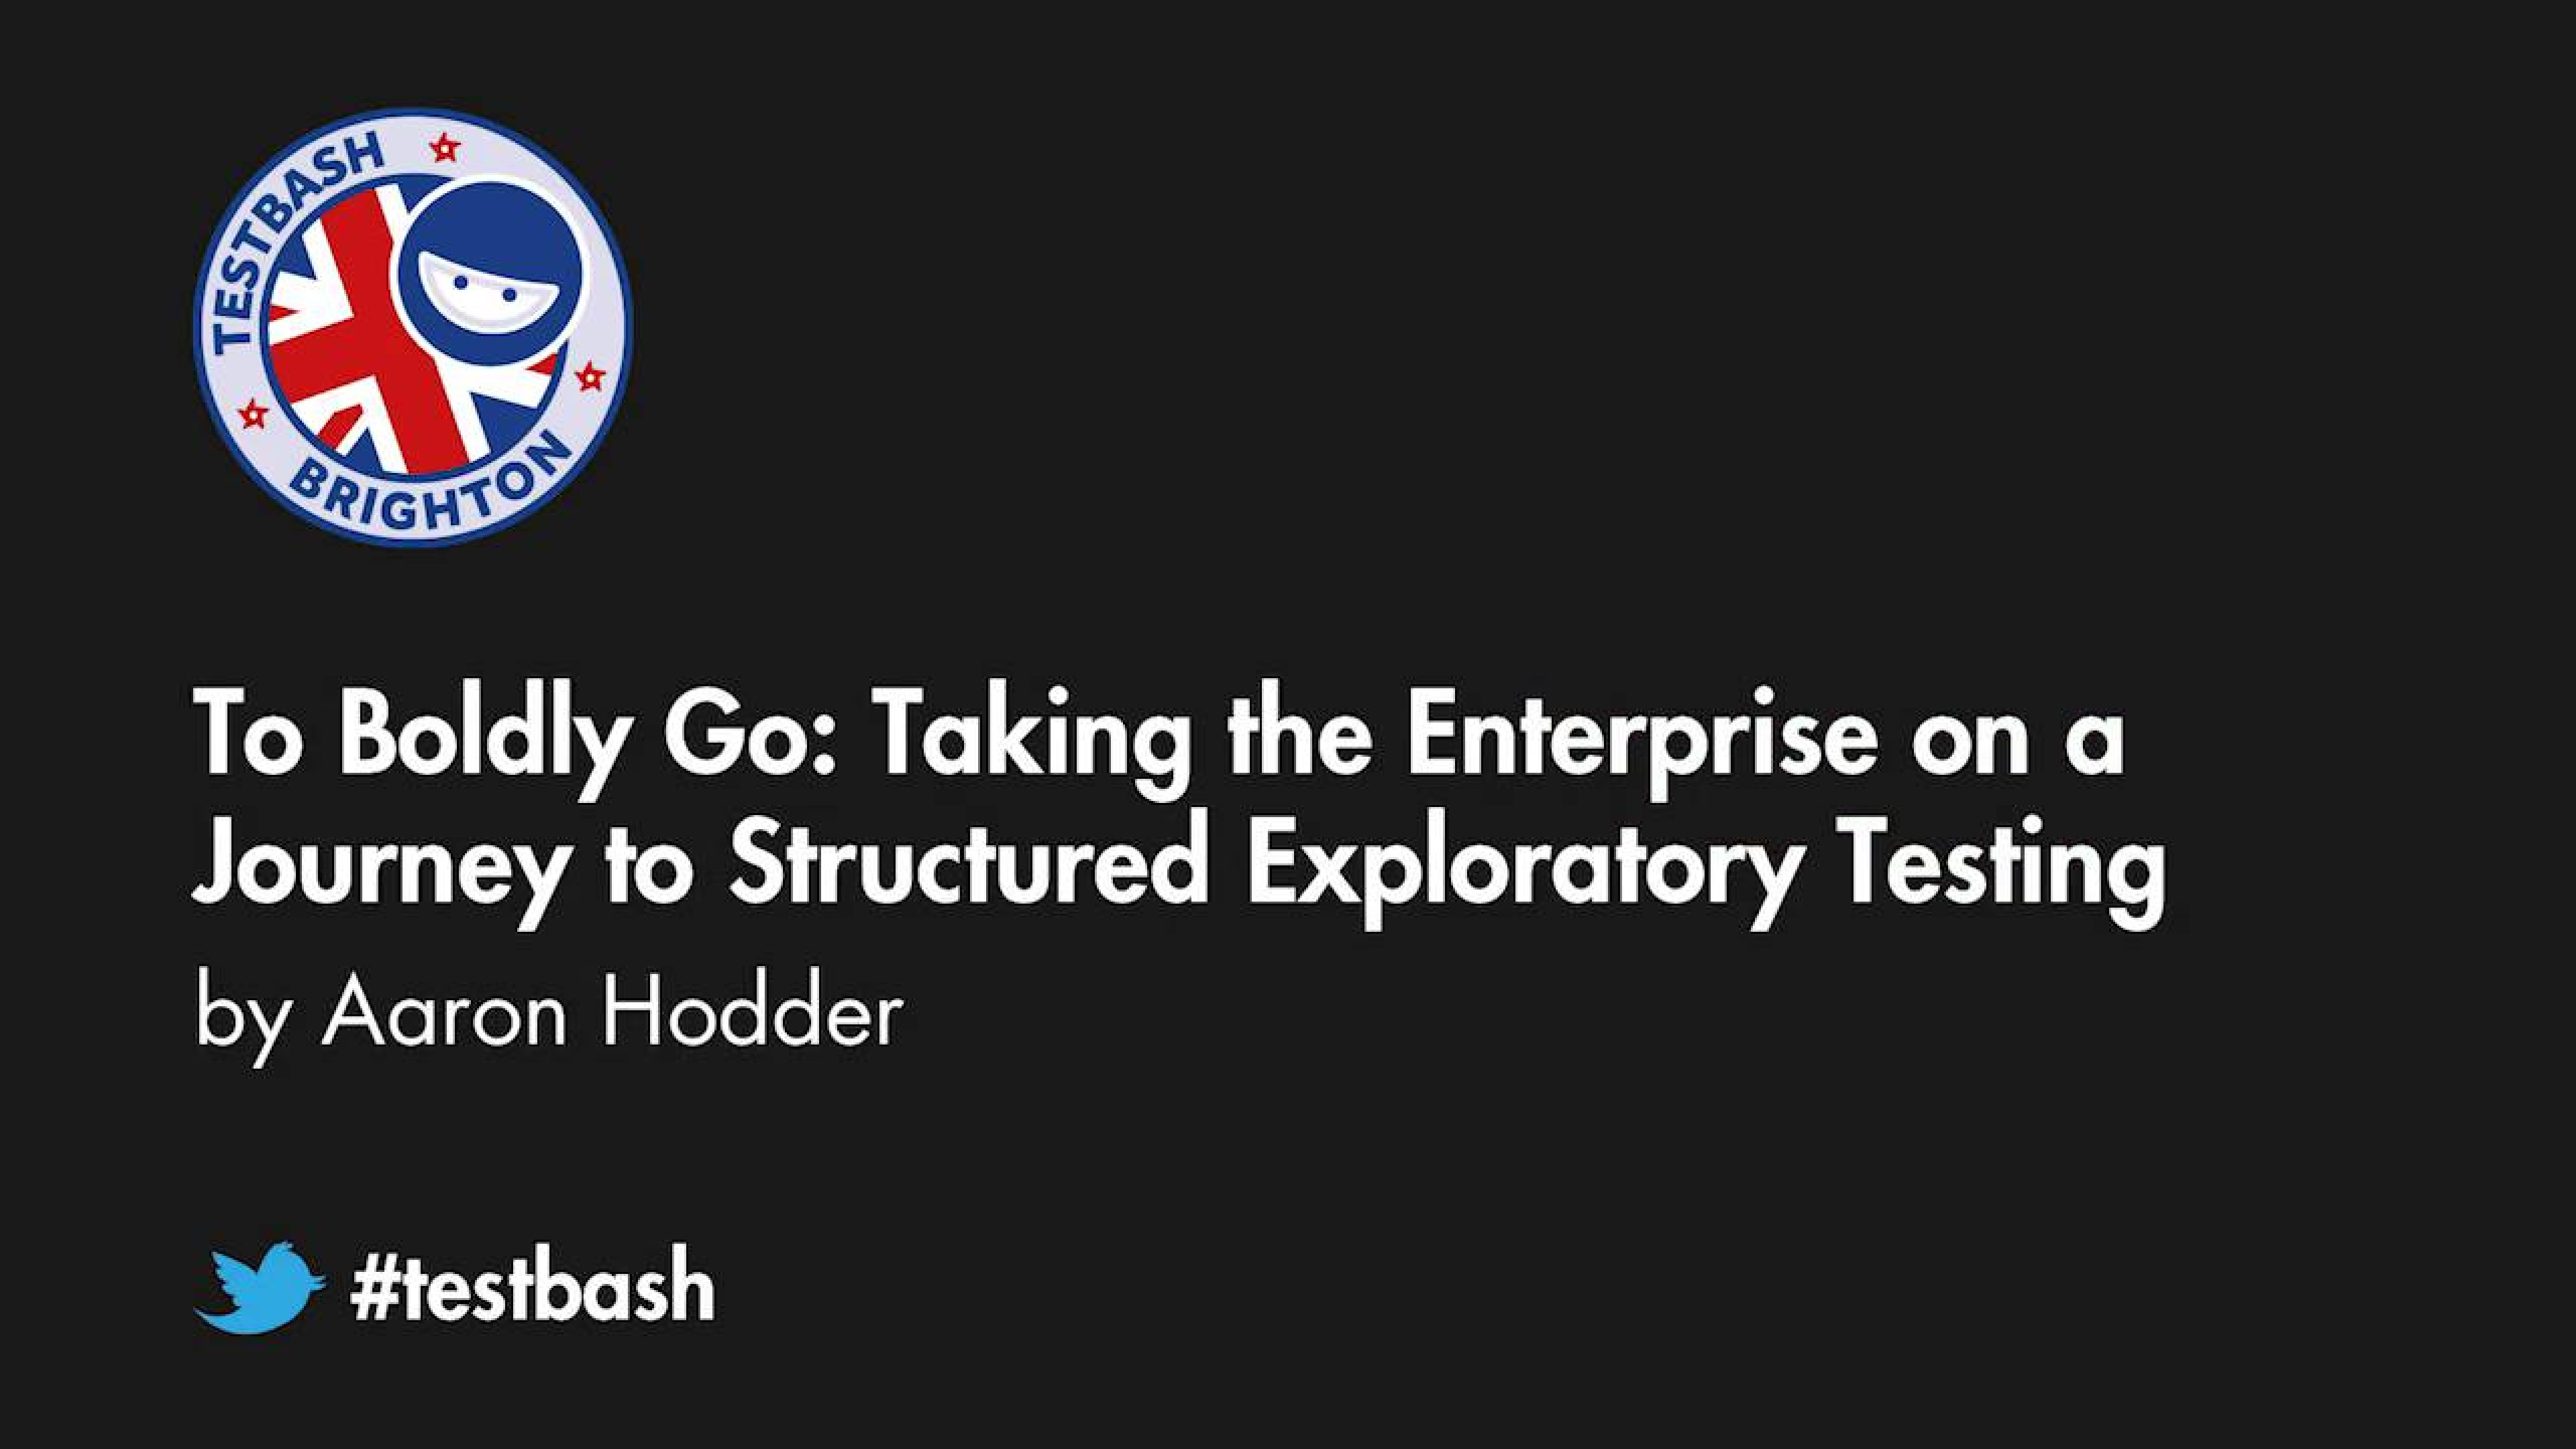 To Boldly Go: Taking The Enterprise On A Journey To Structured Exploratory Testing - Aaron Hodder